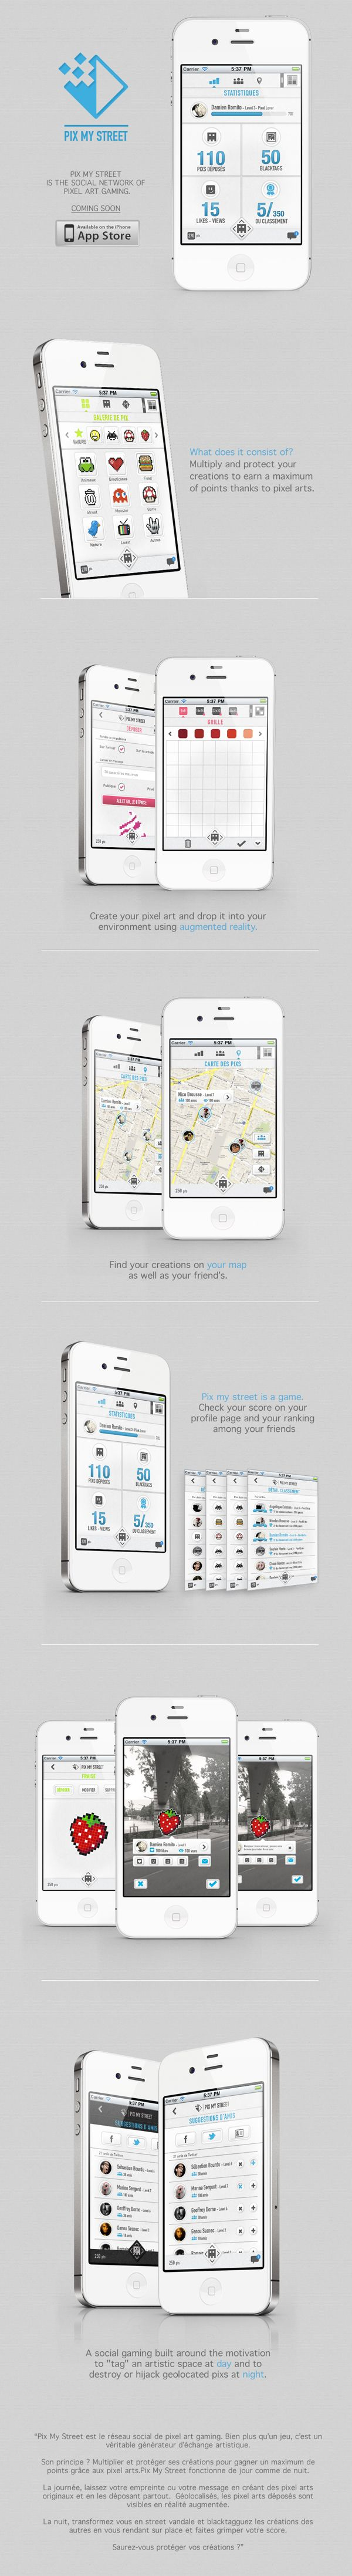 iPhone app Pix my street by julia bruyneel, via Behance